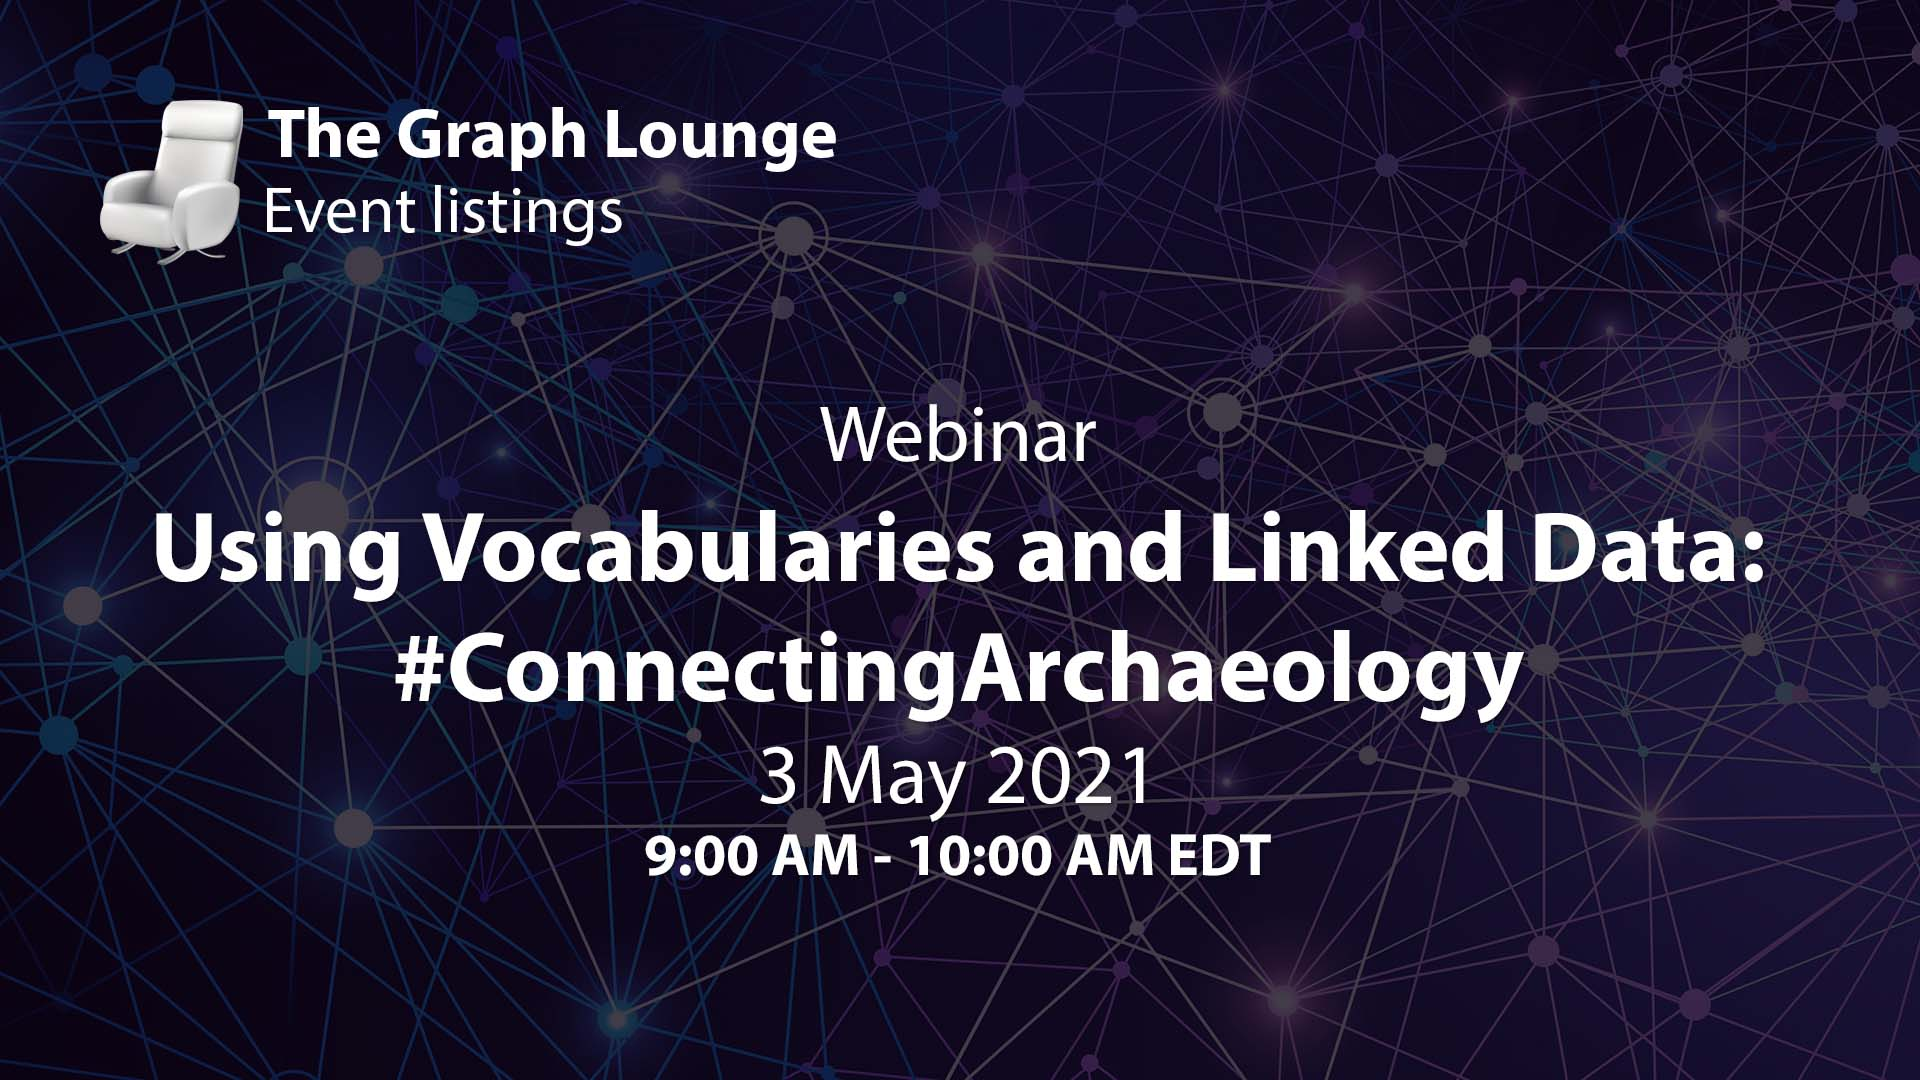 Using Vocabularies and Linked Data: #ConnectingArchaeology